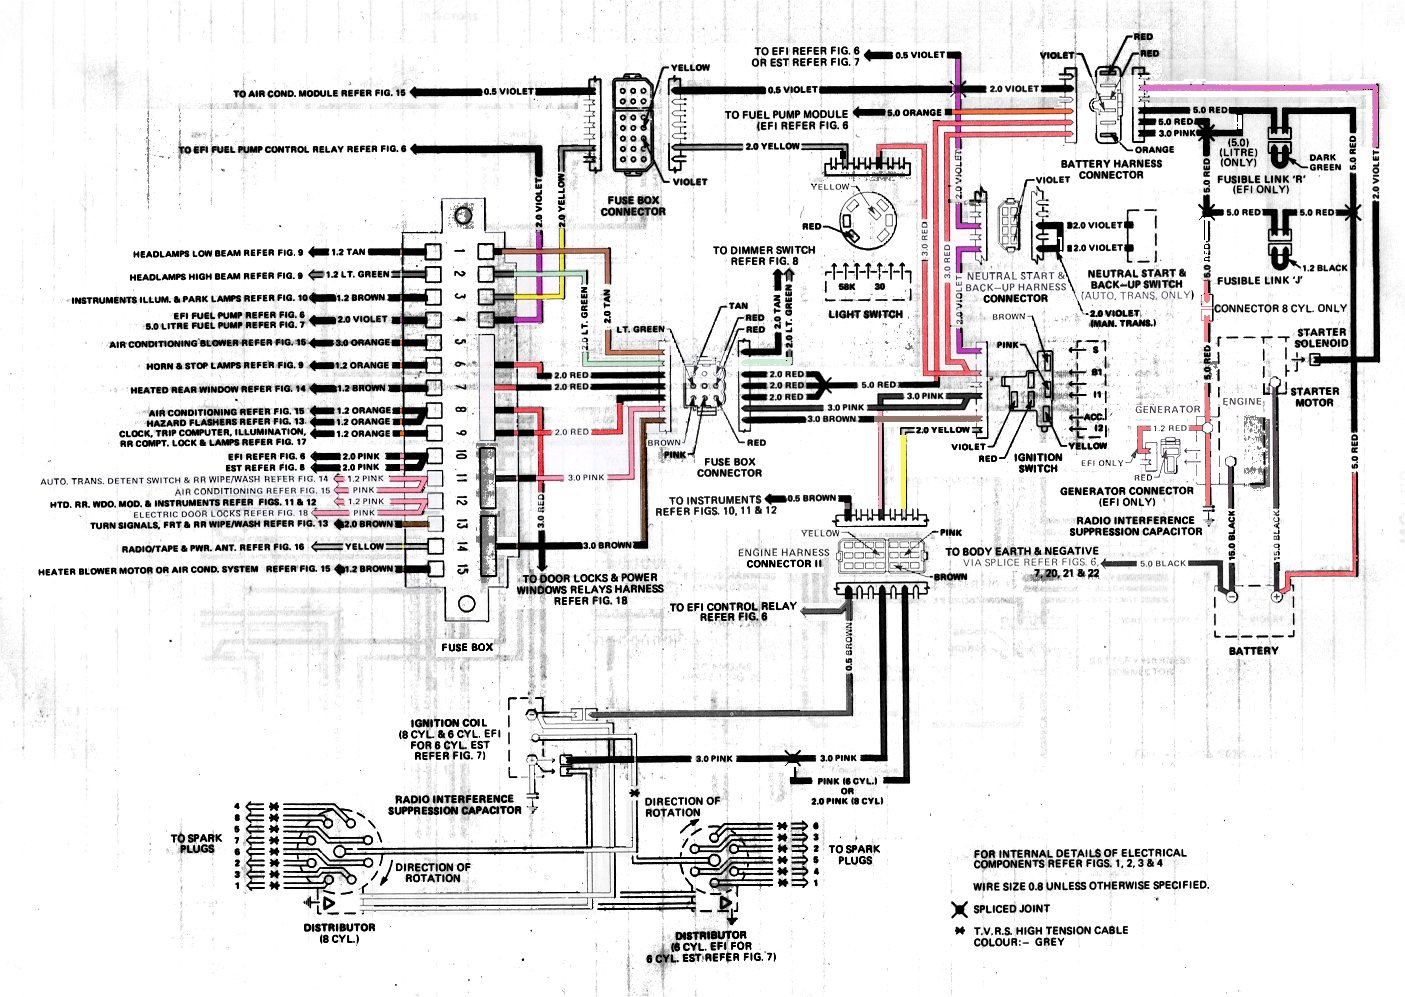 Wiring Diagram Holden Vk Commodore Download Free Ebook Manual